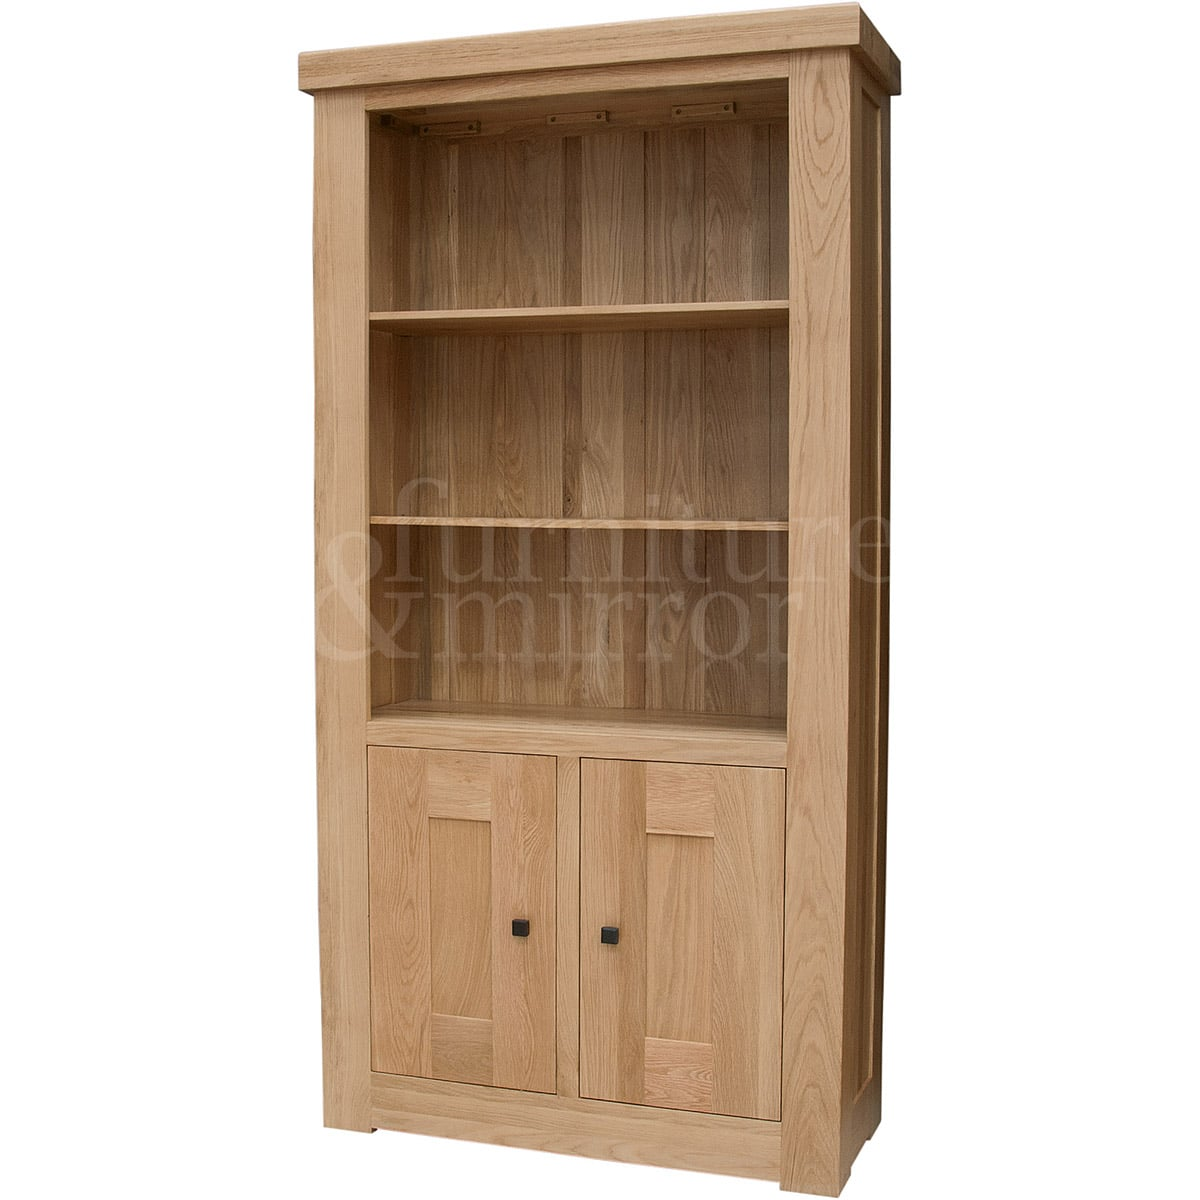 Chunky two door solid oak bookcase furniture and mirror